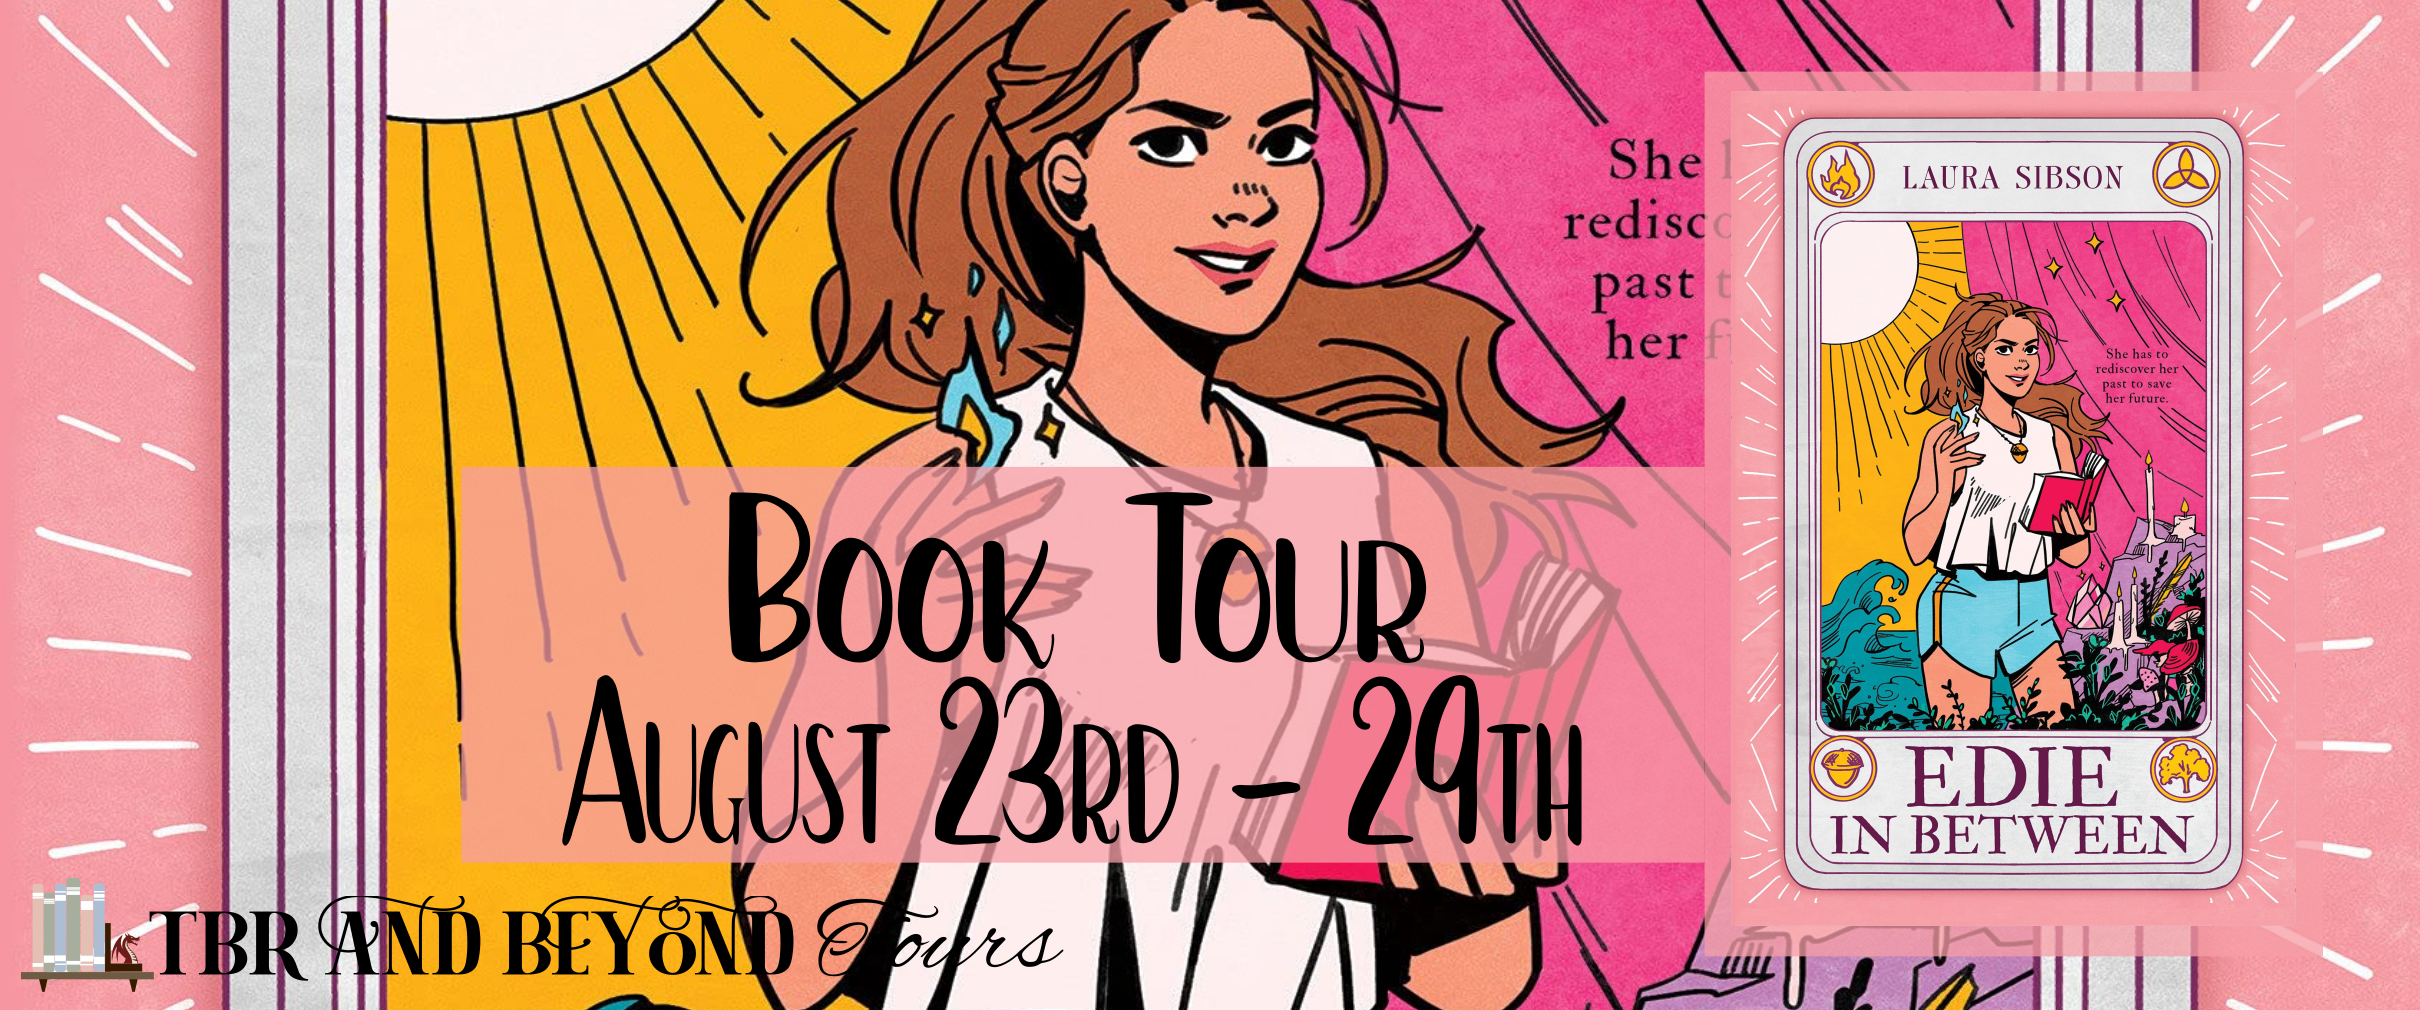 Blog Tour: Edie in Between by Laura Sibson (Interview + Aesthetic Board!)